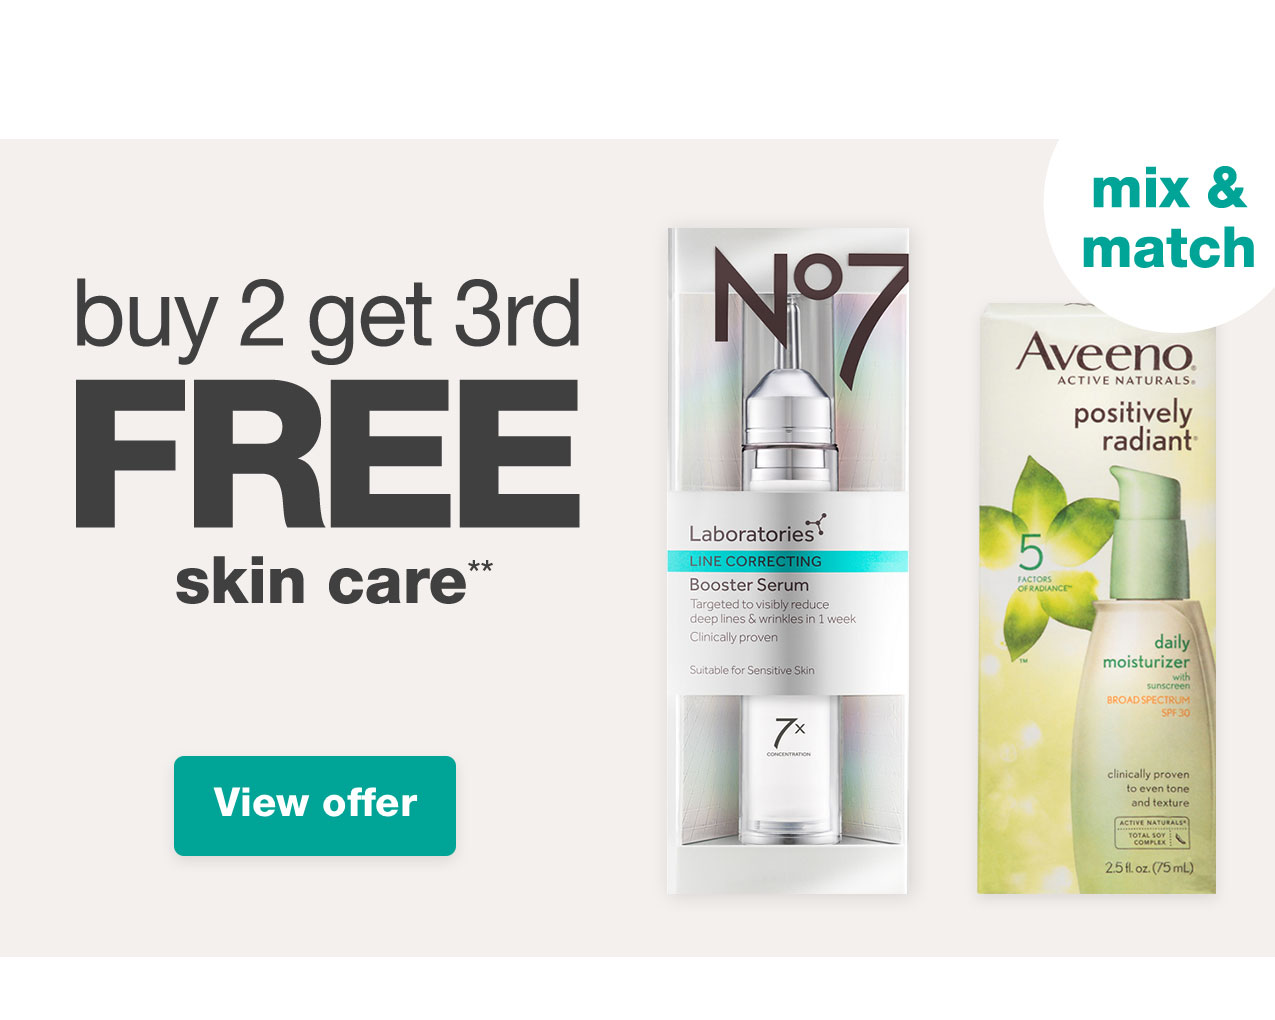 buy 2 get 3rd FREE skin care** View offer